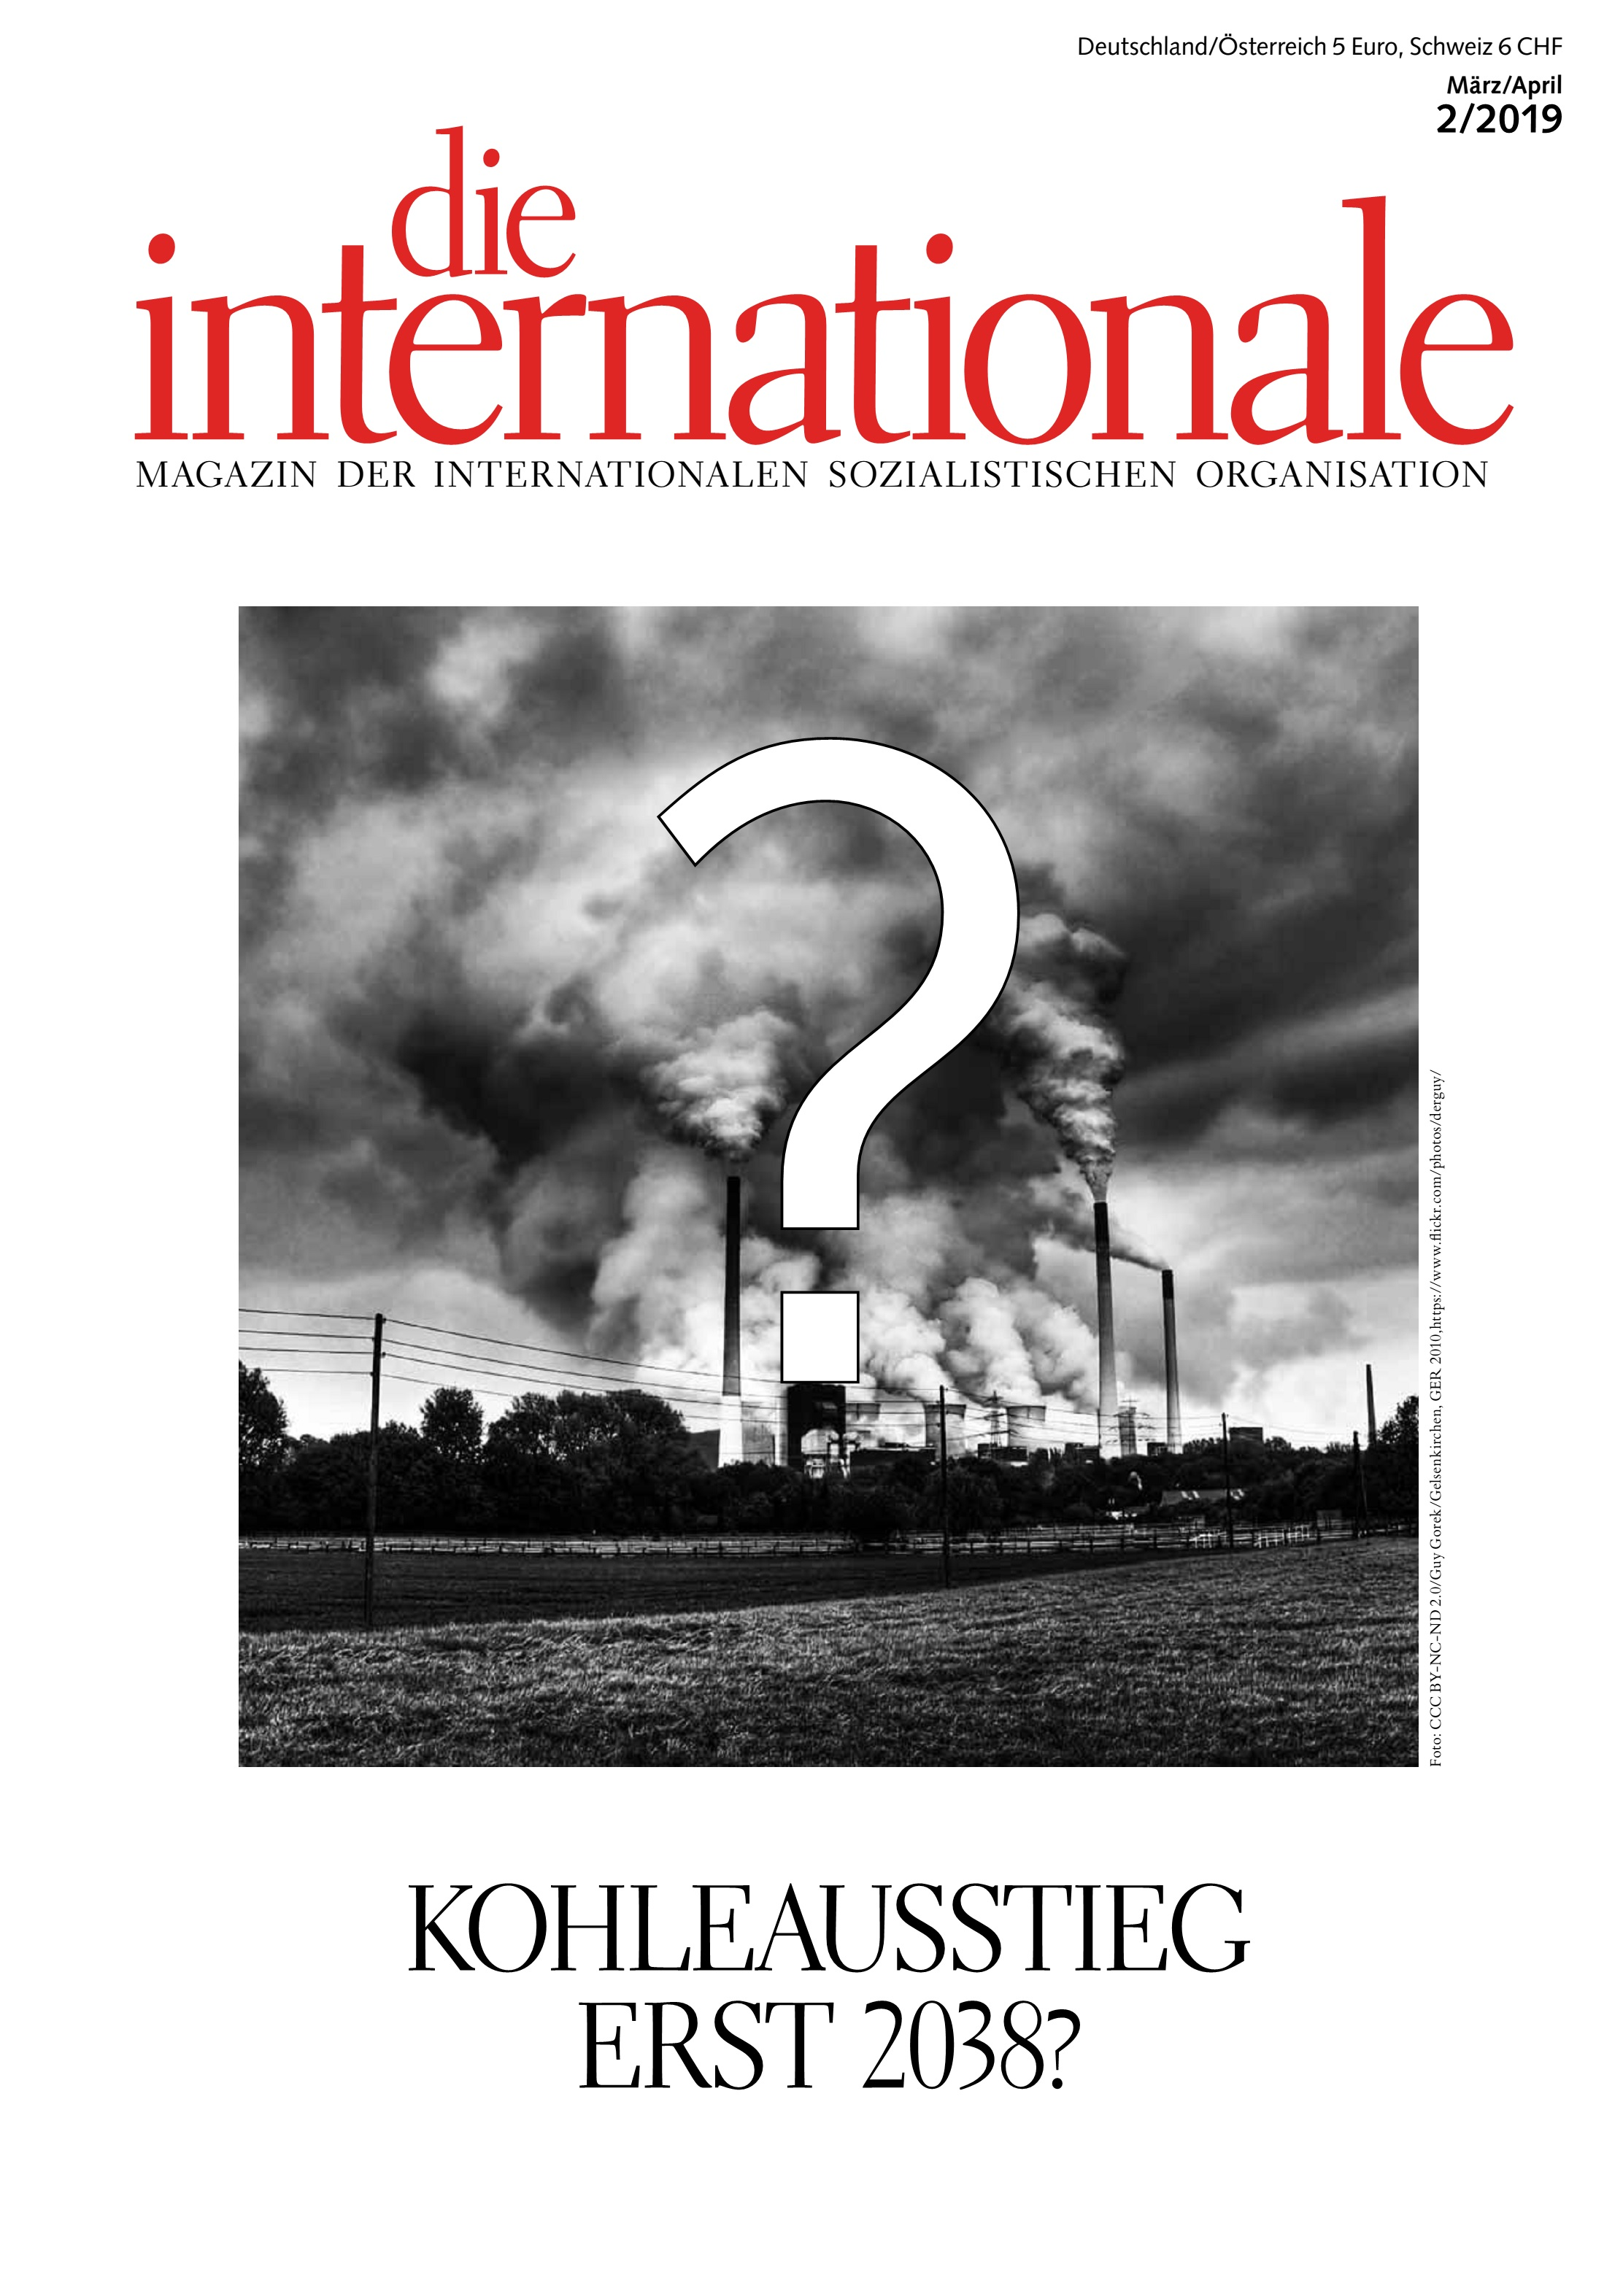 die internationale